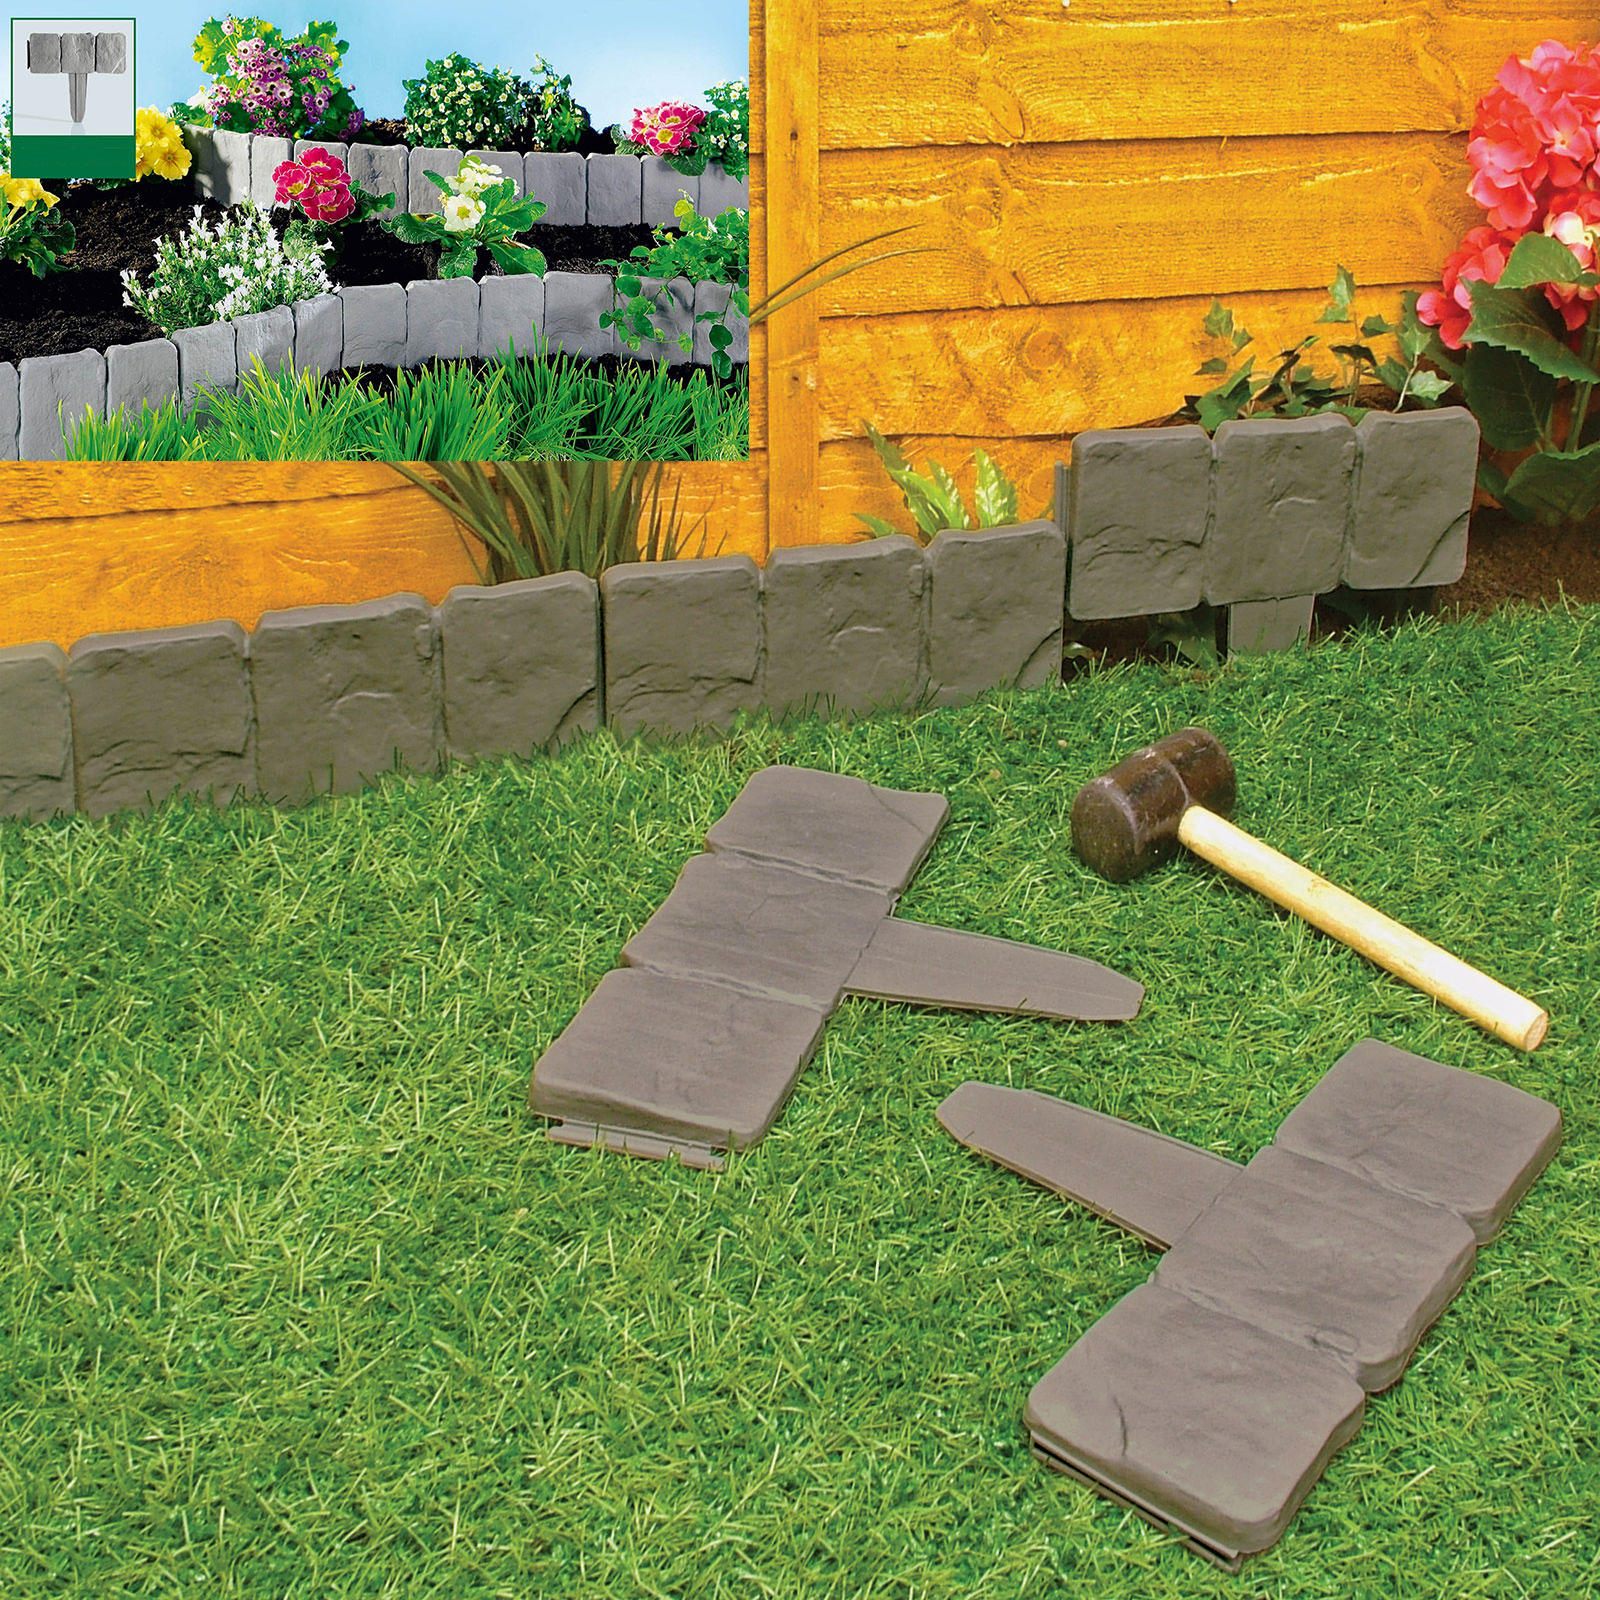 garden lawn edging cobble stone plastic plant border 8ft 2. Black Bedroom Furniture Sets. Home Design Ideas